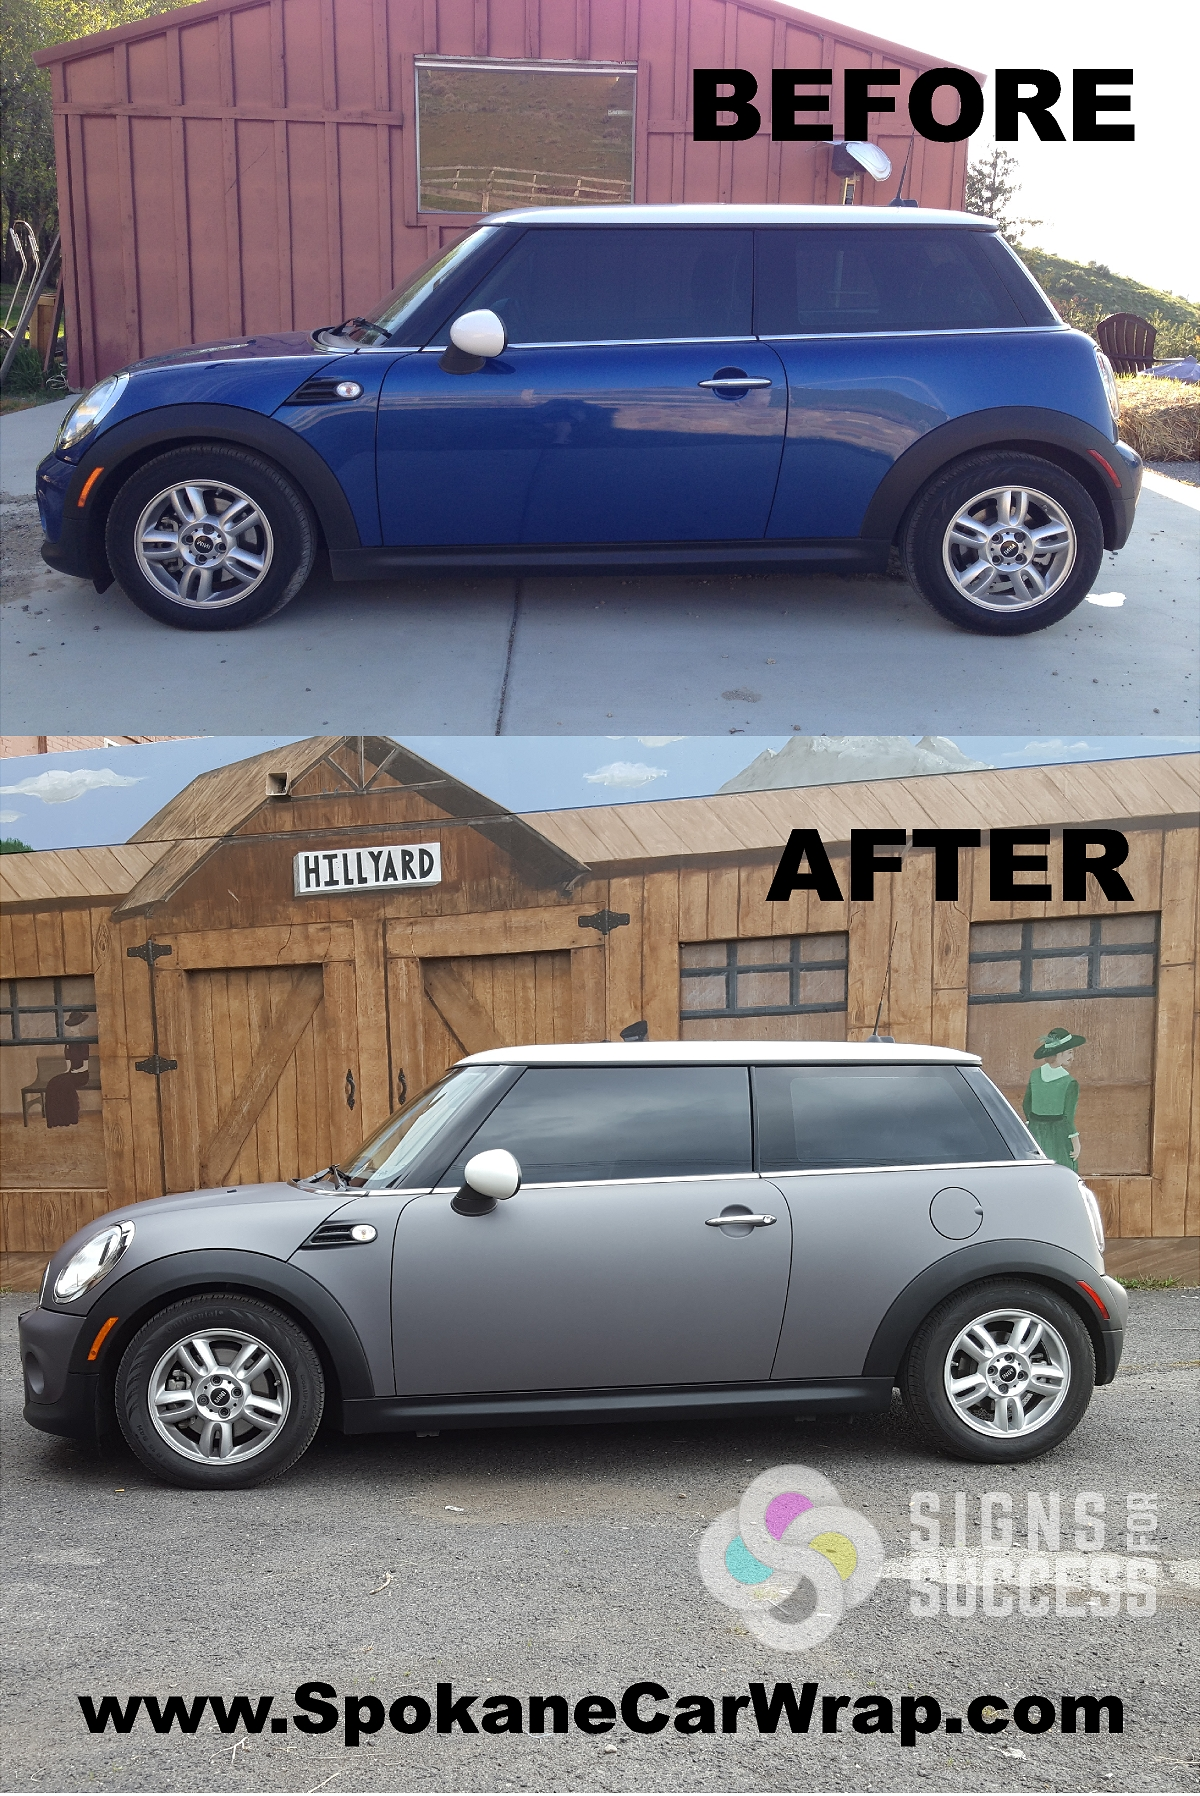 Change Your Look With A Car Color Wrap Signs For Success